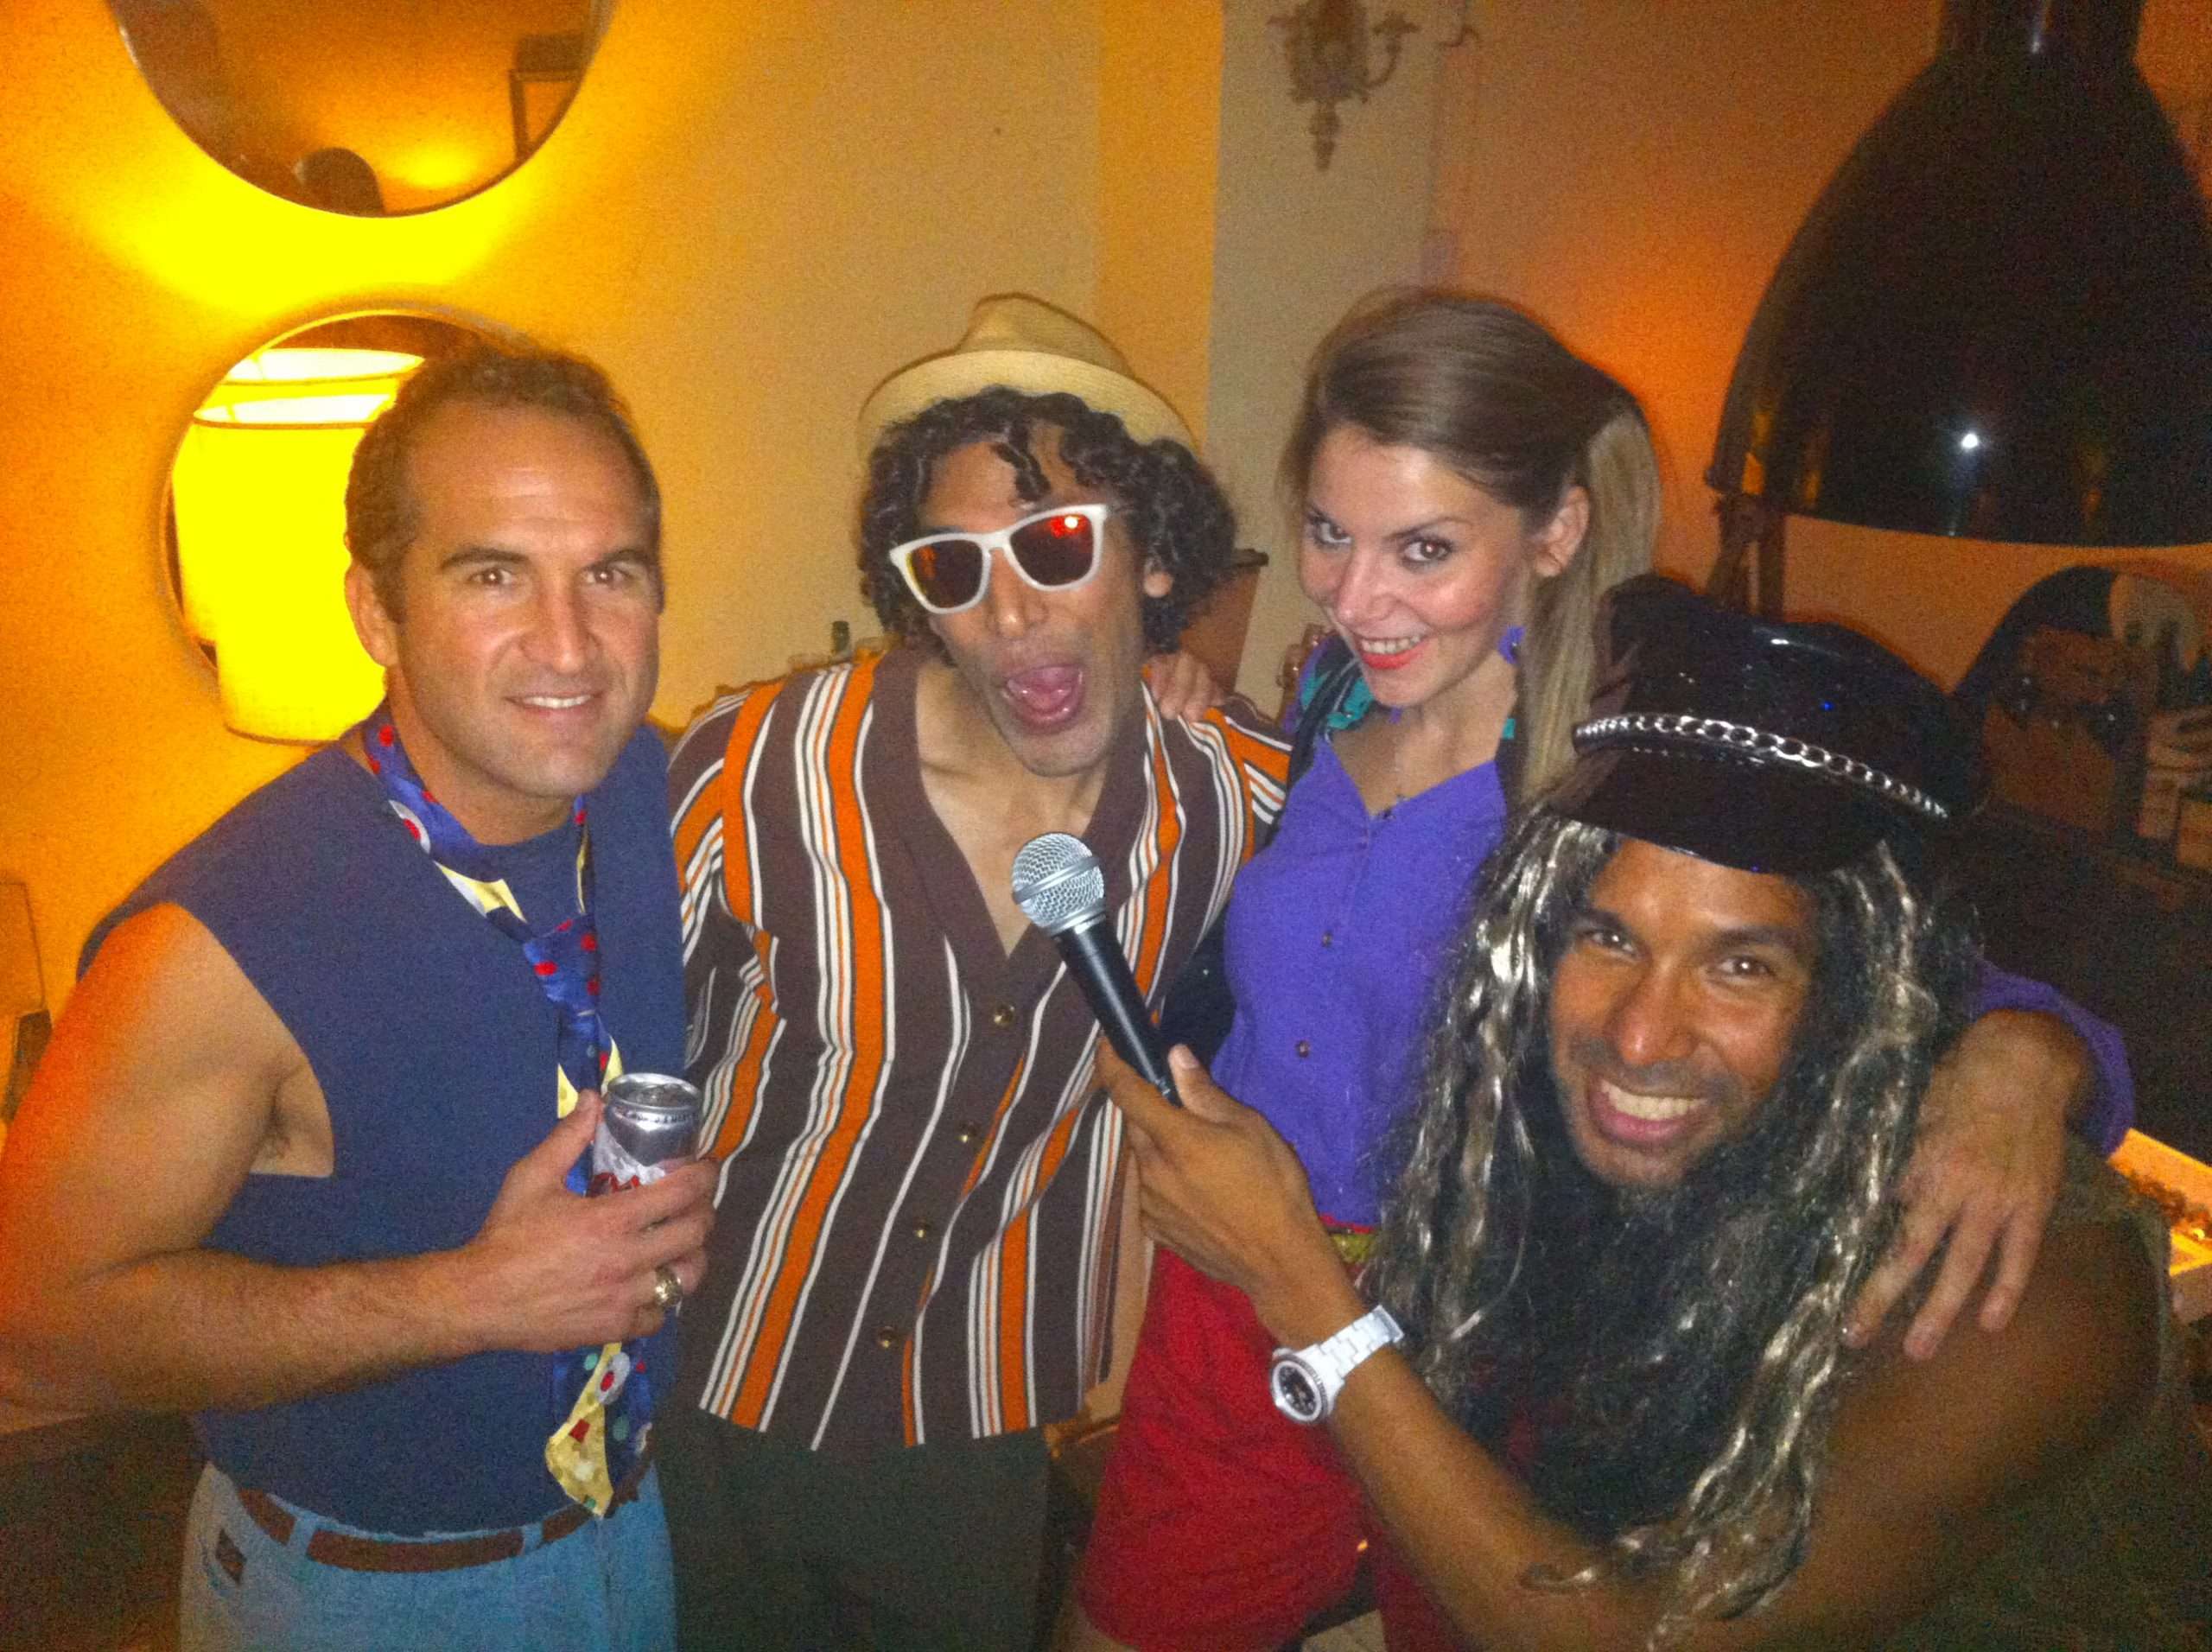 Recent Milli Vanilli themed speakeasy party at the Richter Co. Photo courtesy of Rachel Holland